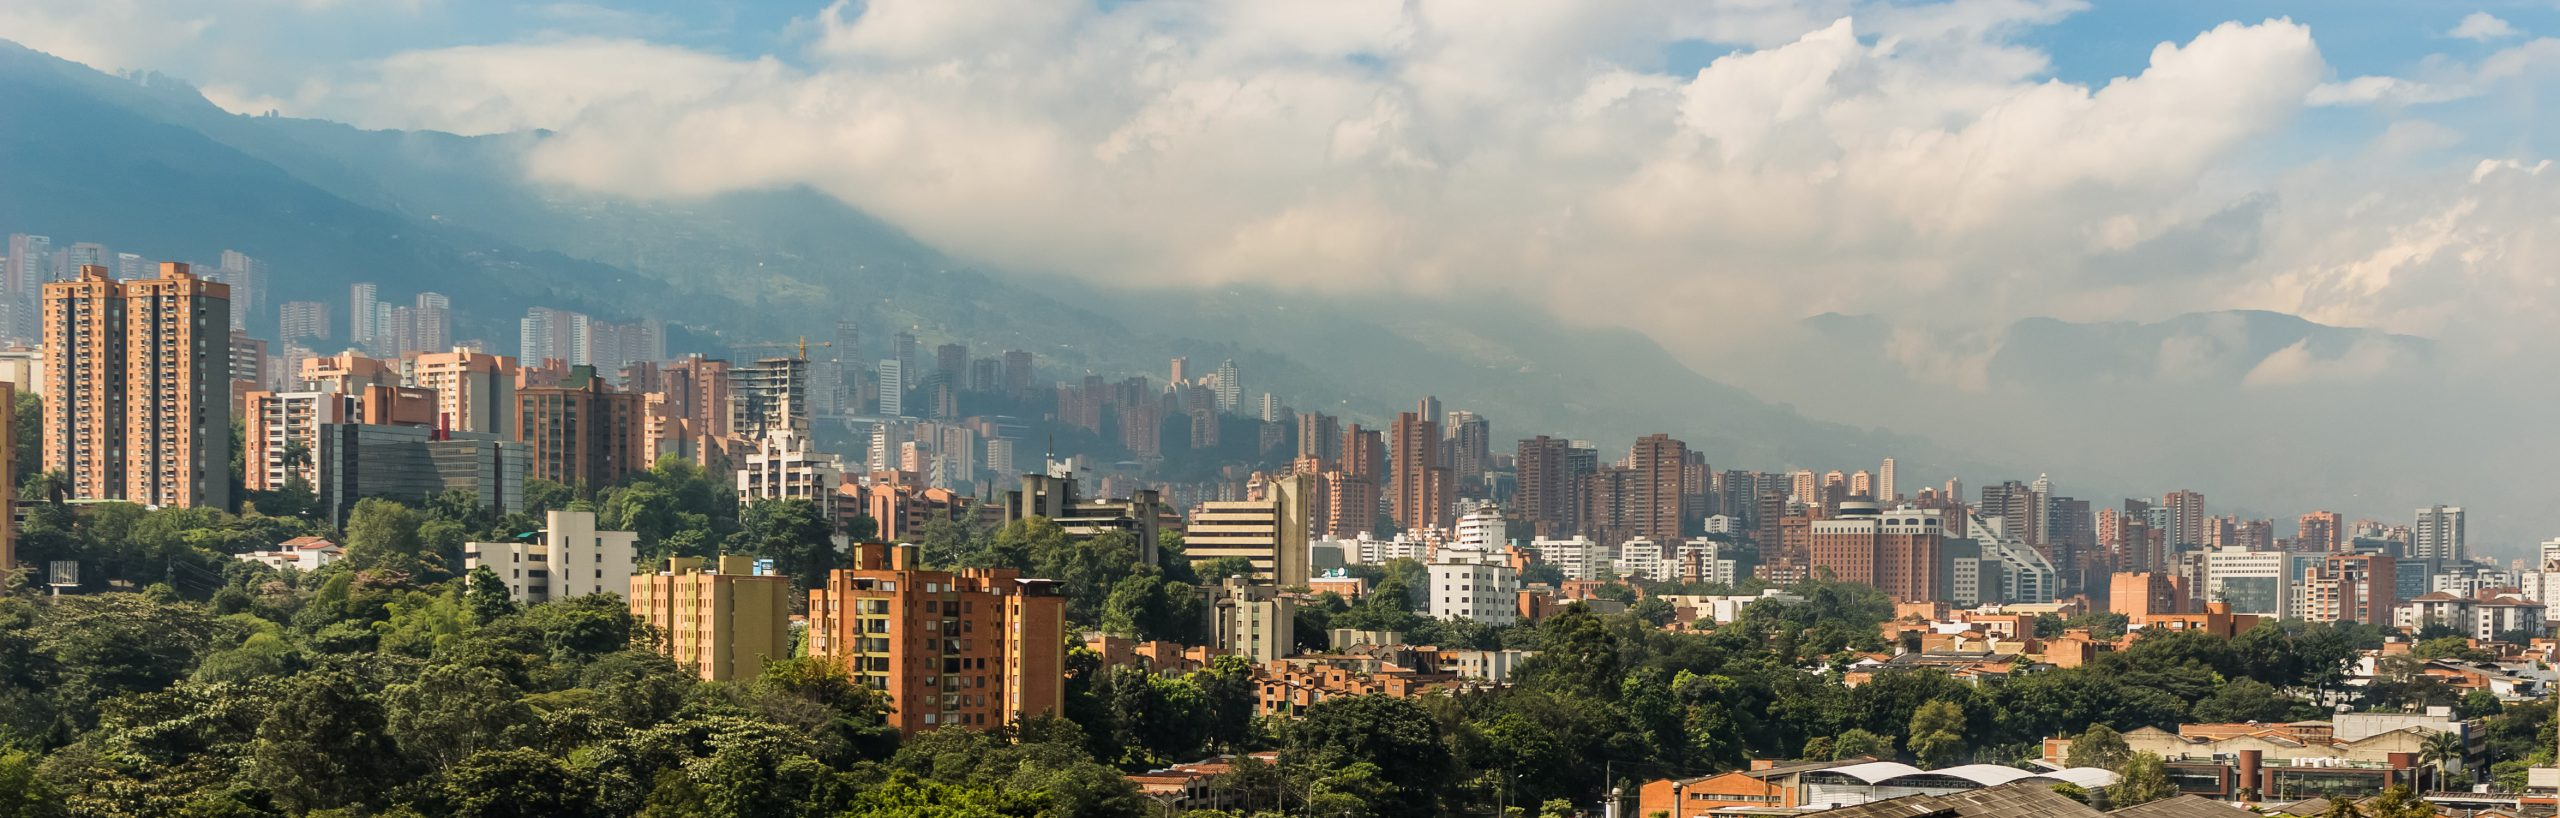 Panoramic view of a city in Colombia